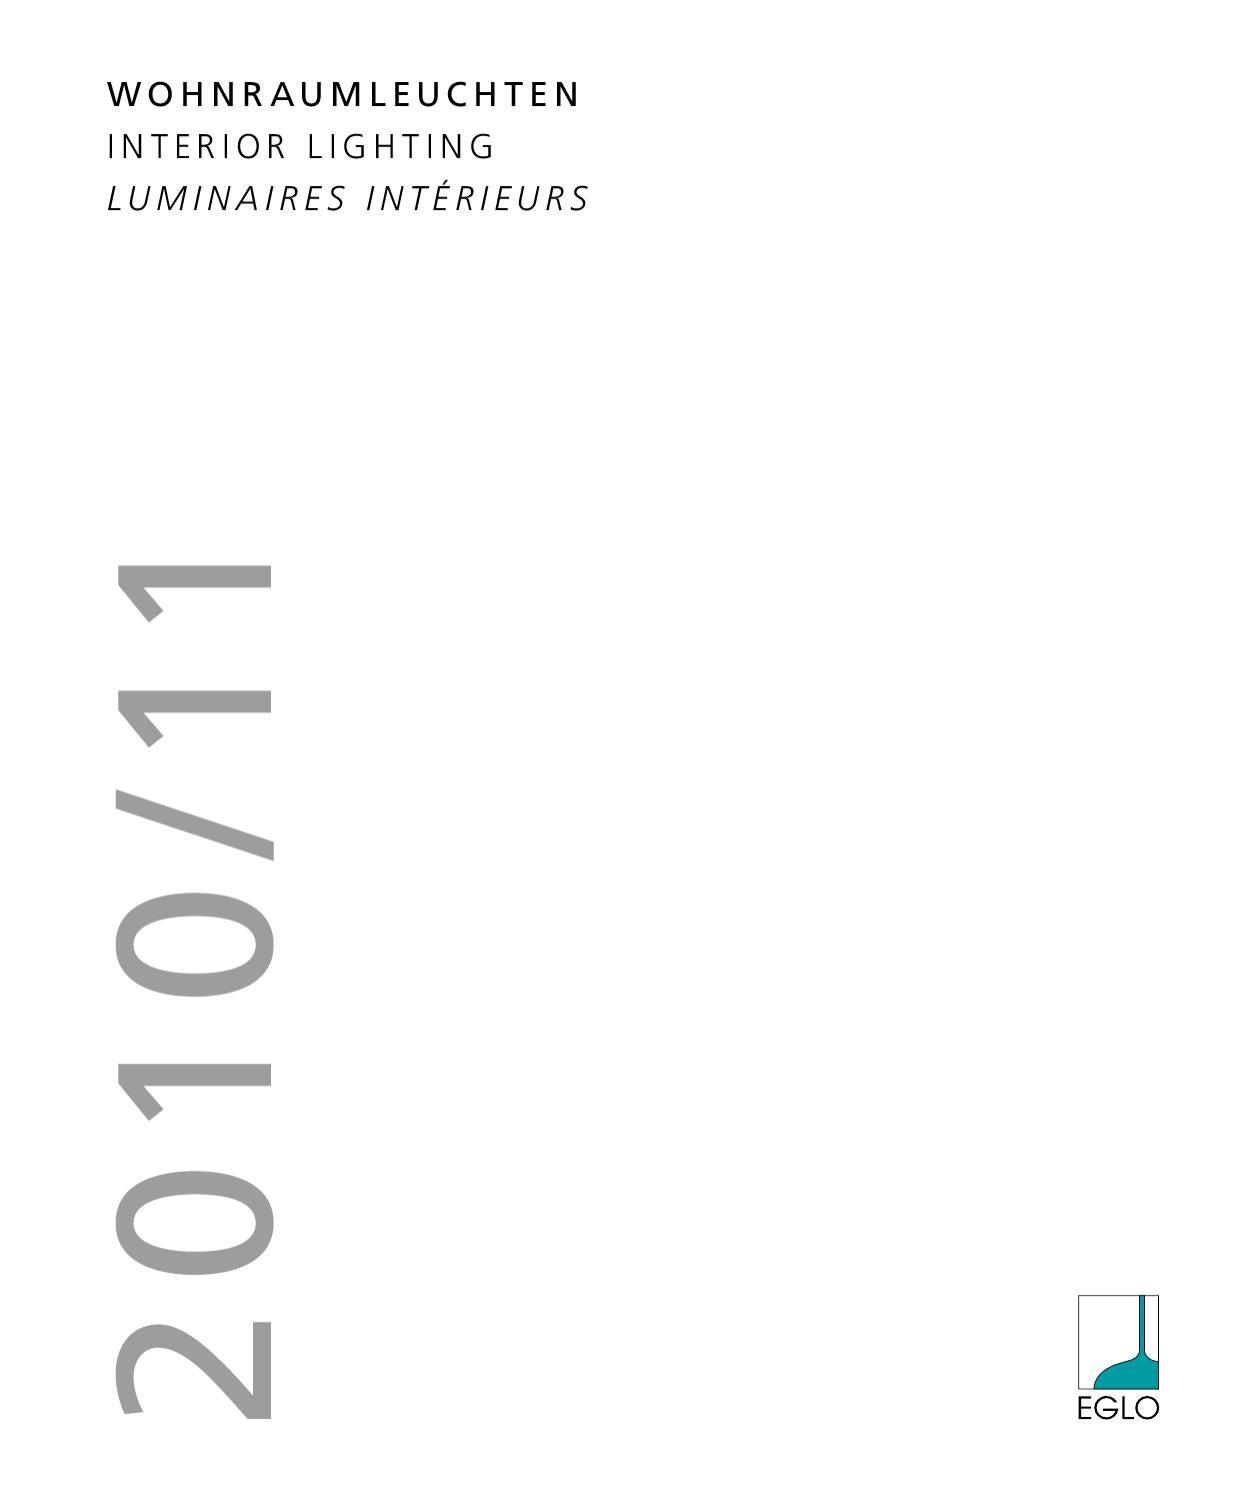 Eglo Interior Lighting 2010 2011 By Iliacomua Shop Issuu